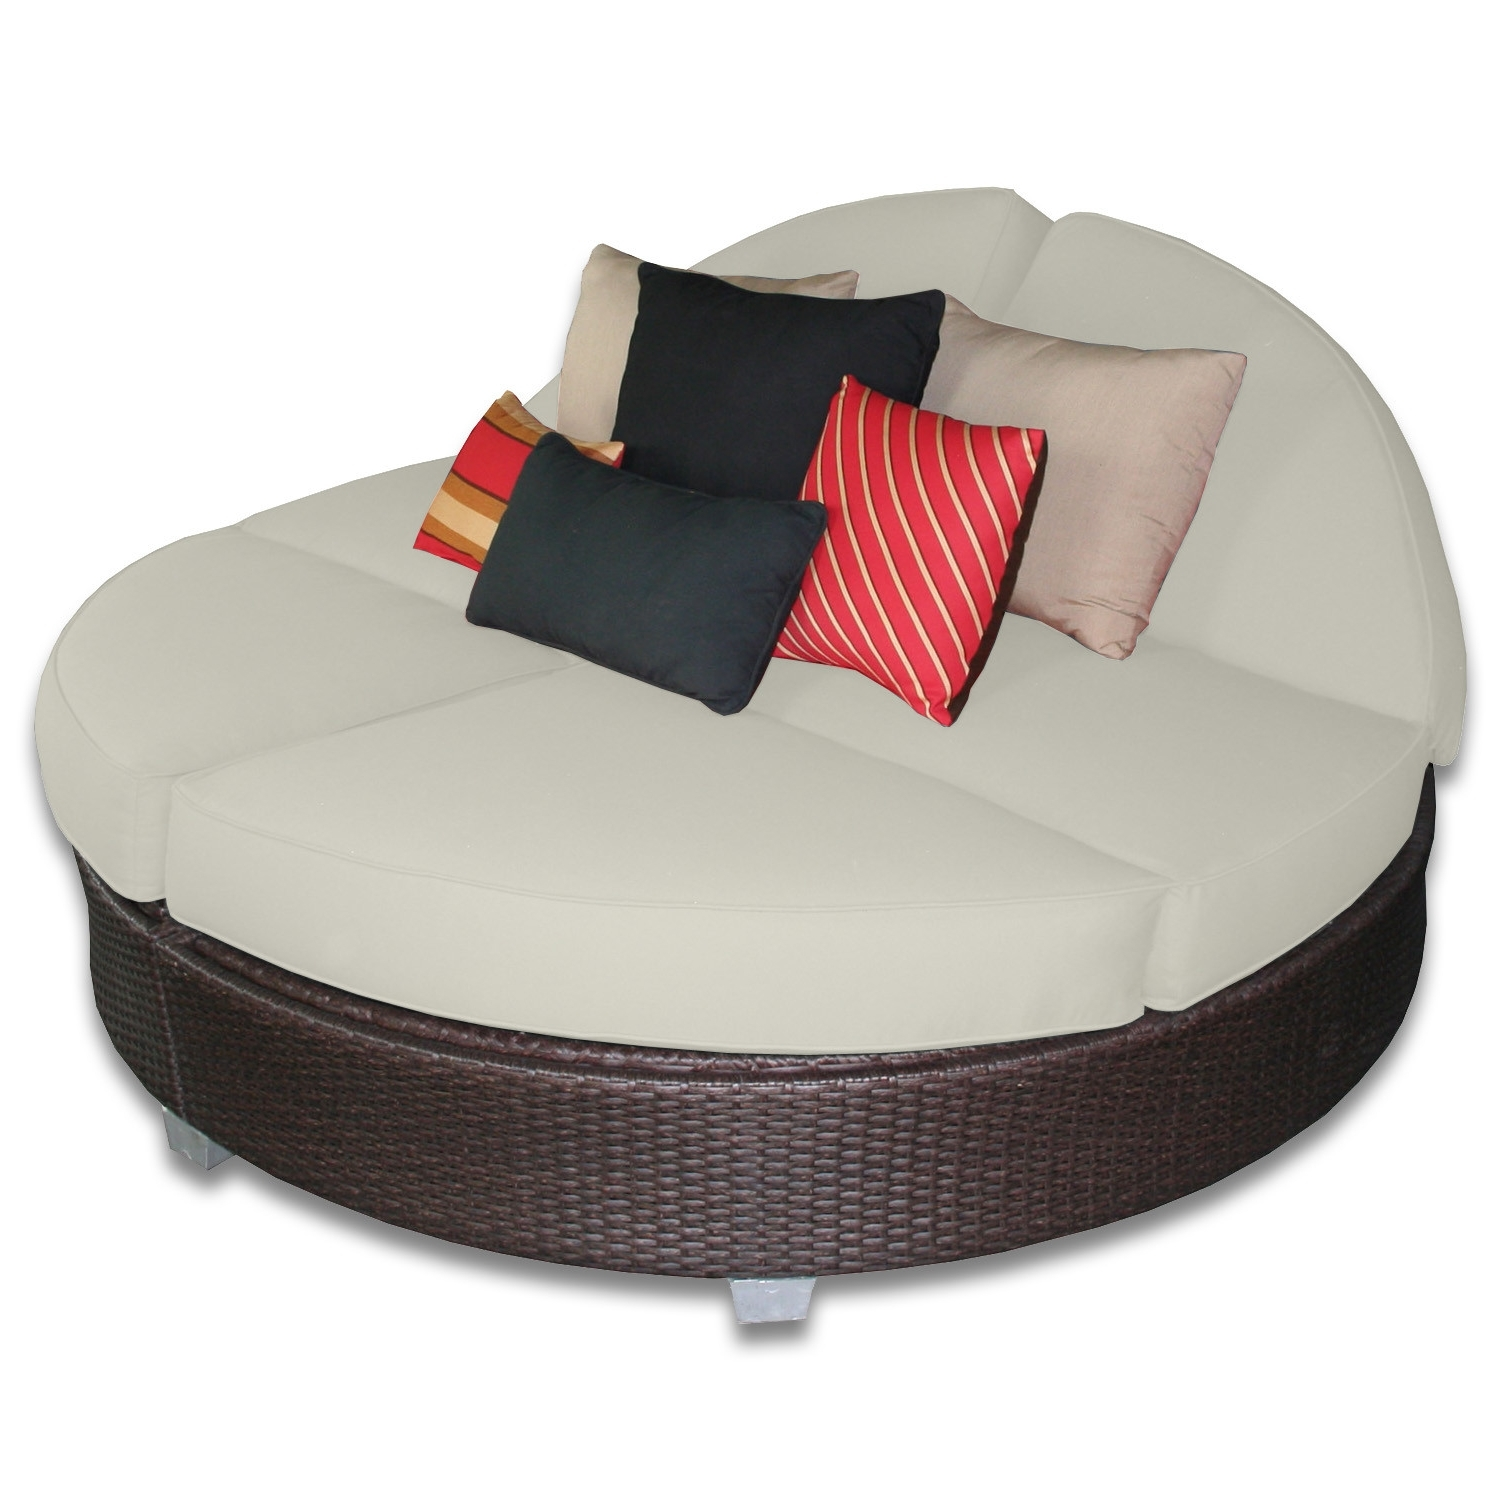 Preferred Round Chaises Inside Chaise Modern (View 11 of 15)